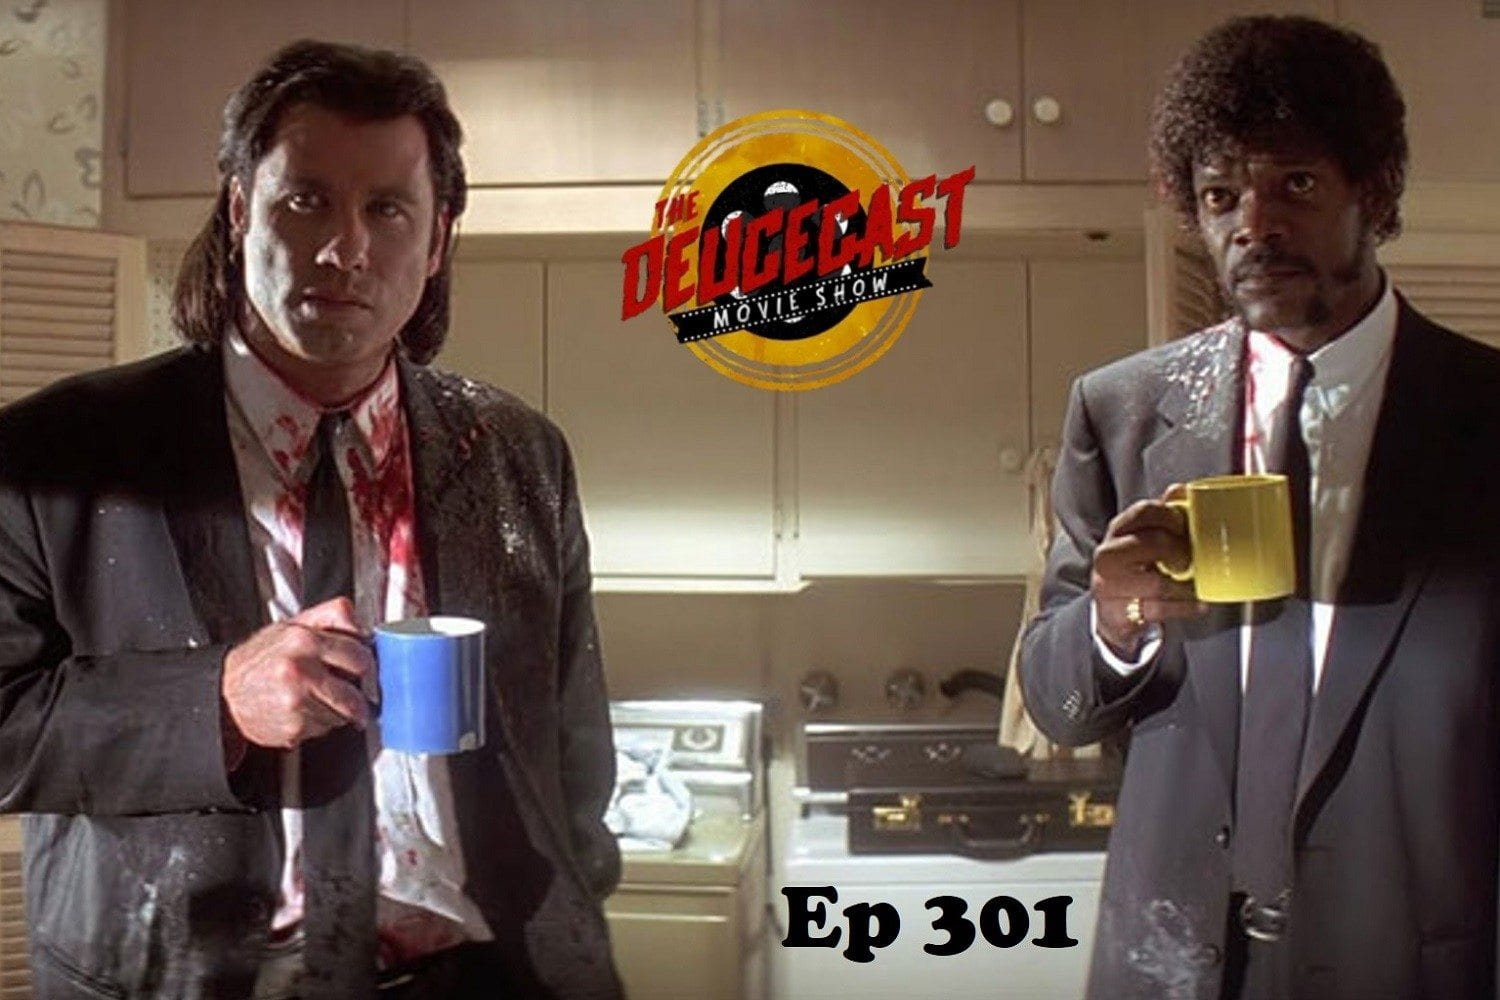 The Deucecast Movie Show #301: MikeTober Coffee